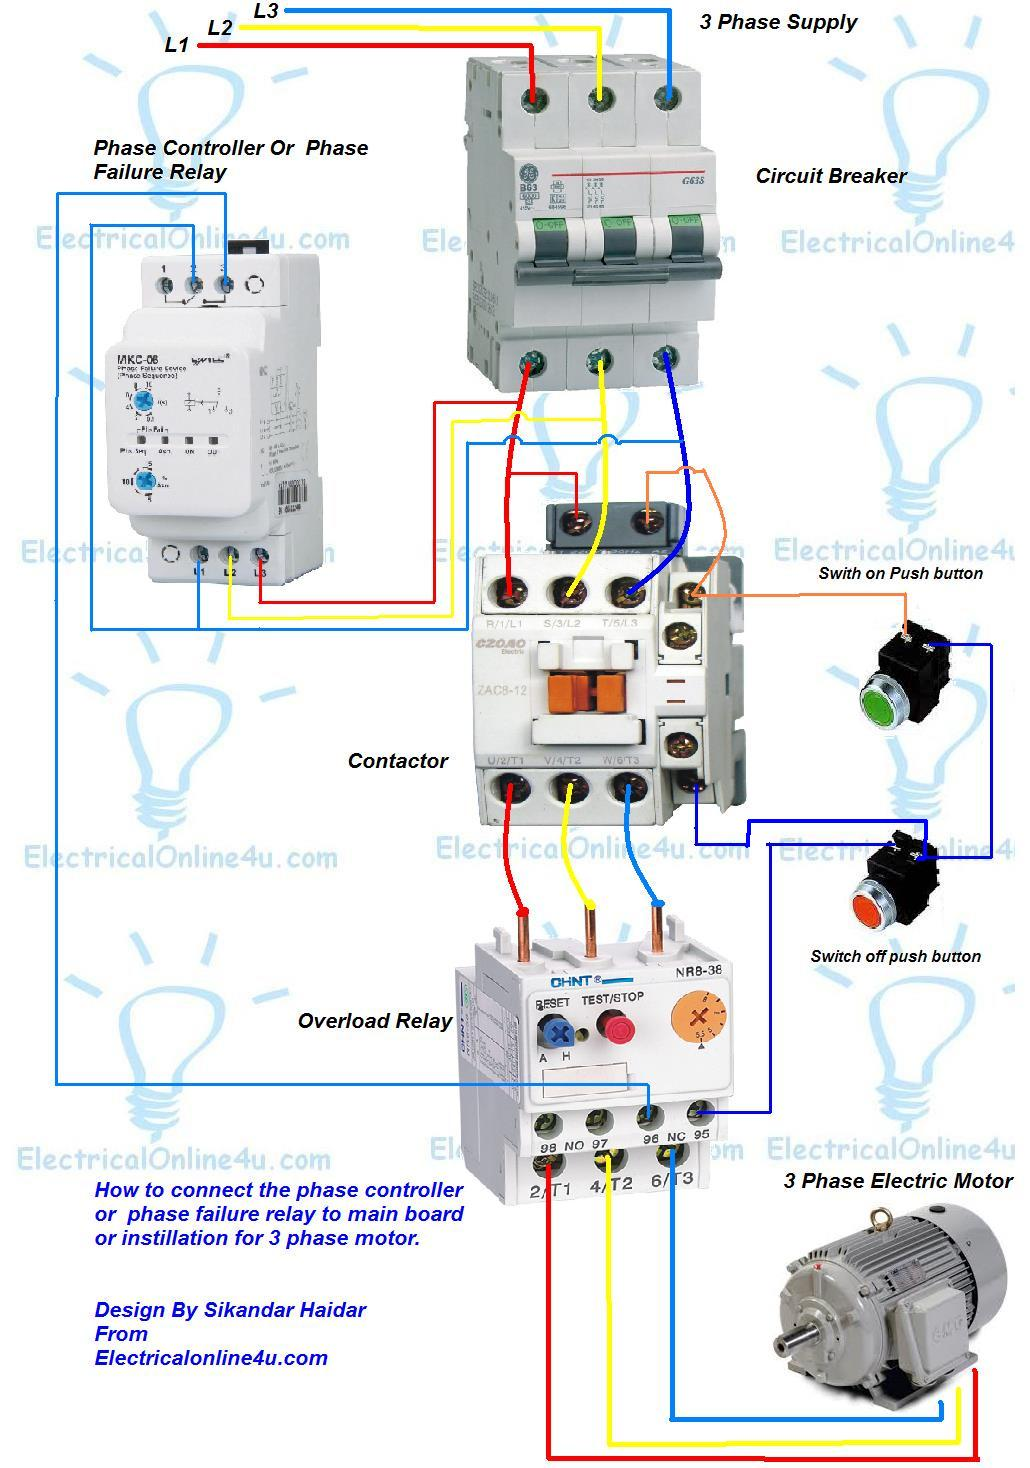 Phase%2Bfailure%2Brelay%2B %2Bphase%2Bcontroller%2Binstilaion%2Bin%2B3%2Bphase%2BMain%2Bboard%2Bor%2Bfor%2B3%2Bphase%2Bmotor phase controller wiring phase failure relay diagram electrical three phase contactor wiring diagram at gsmx.co